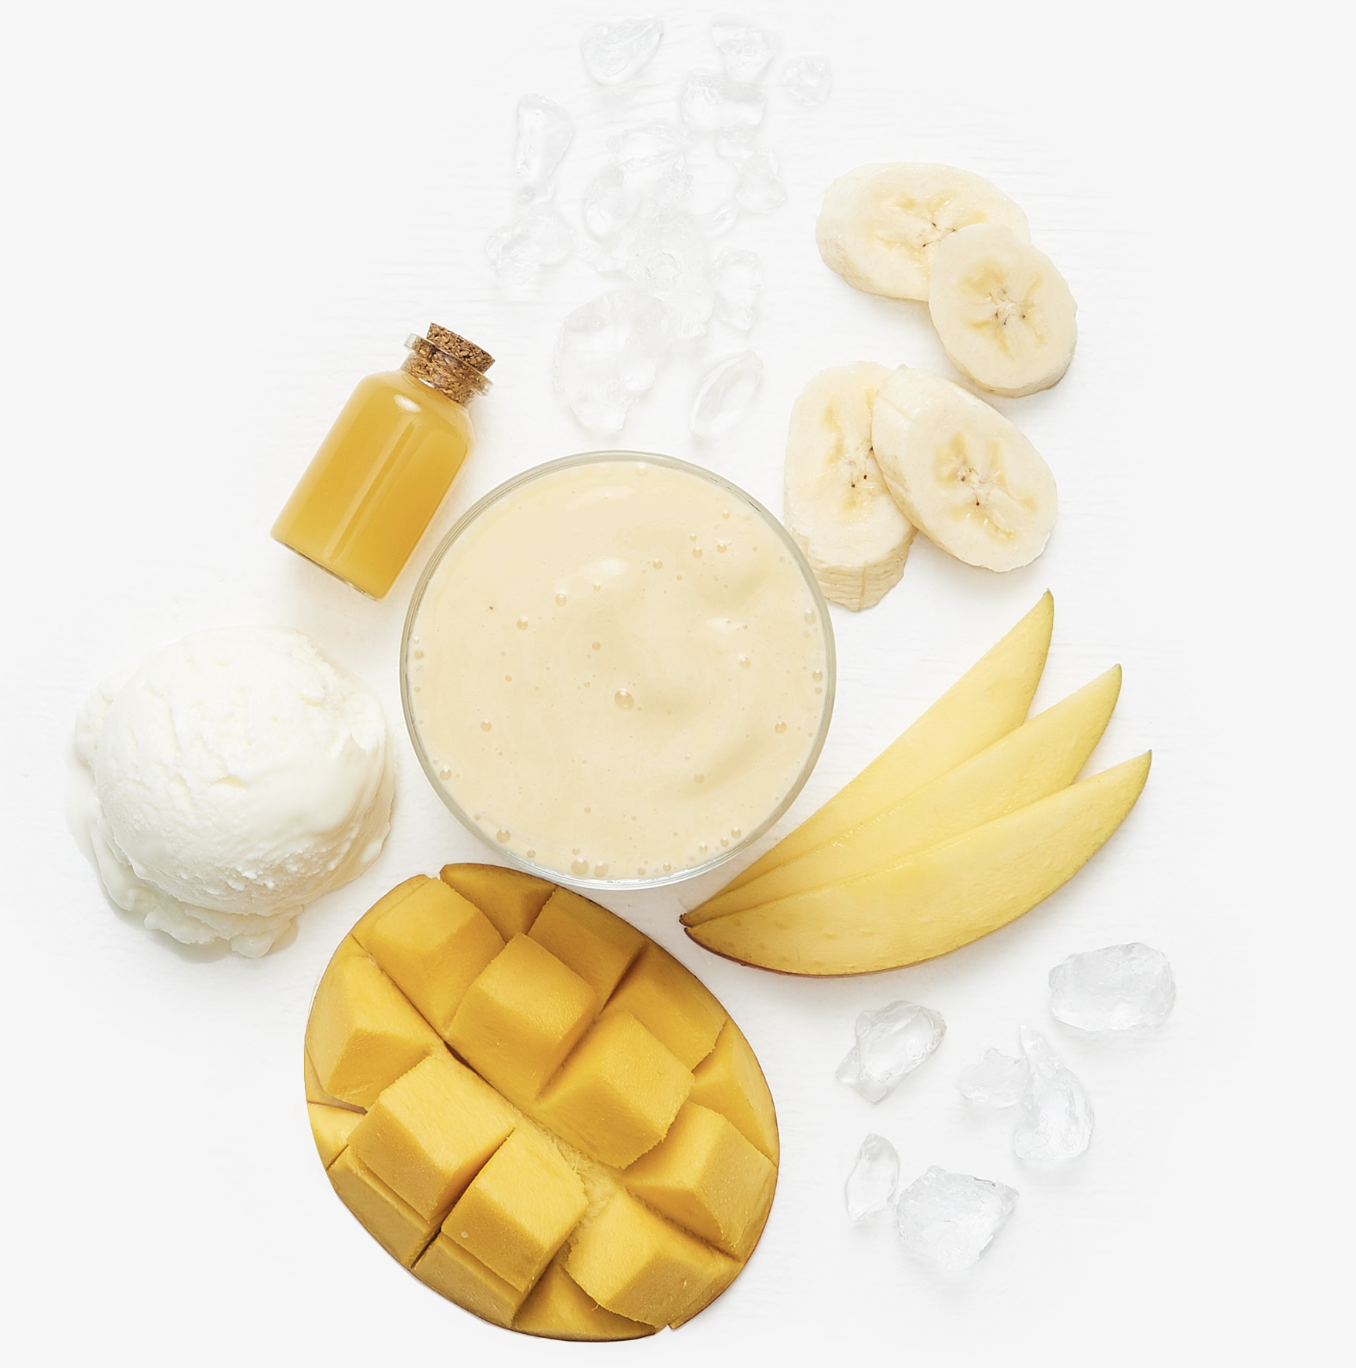 #1 Mango Magic - Coming in at number 1 is the most deliciously creamy combination of Mango Nectar, Mango, Banana, Vanilla Yoghurt & Ice you will ever come across.If you love mango, then you absolutely must try this.